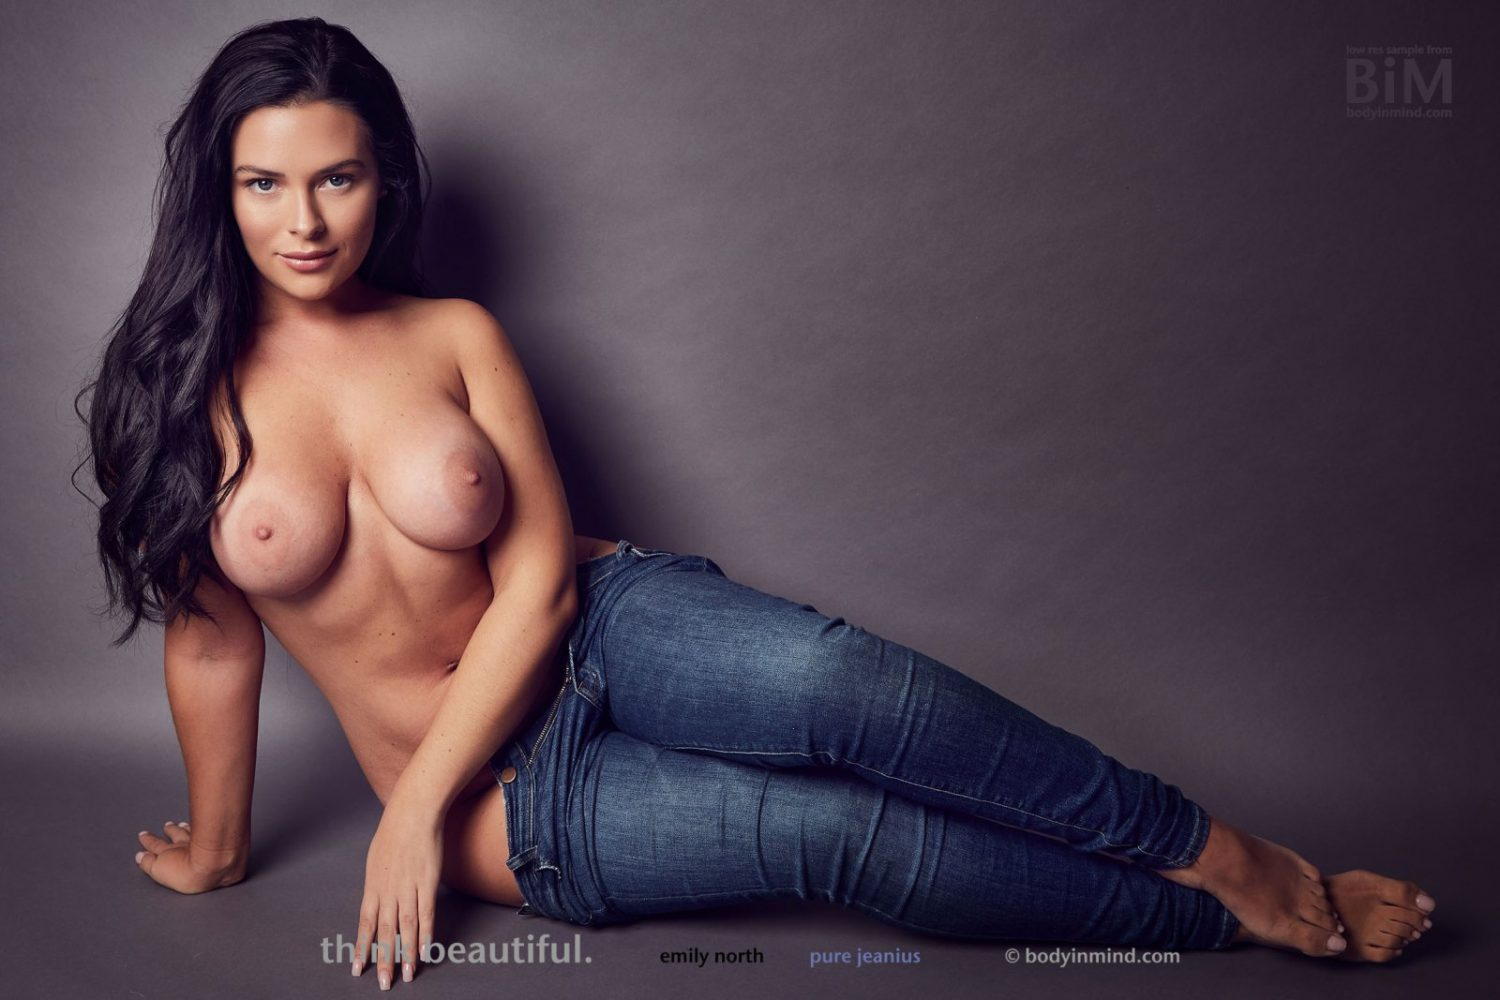 Emily North Pure Jeanius Body In Mind